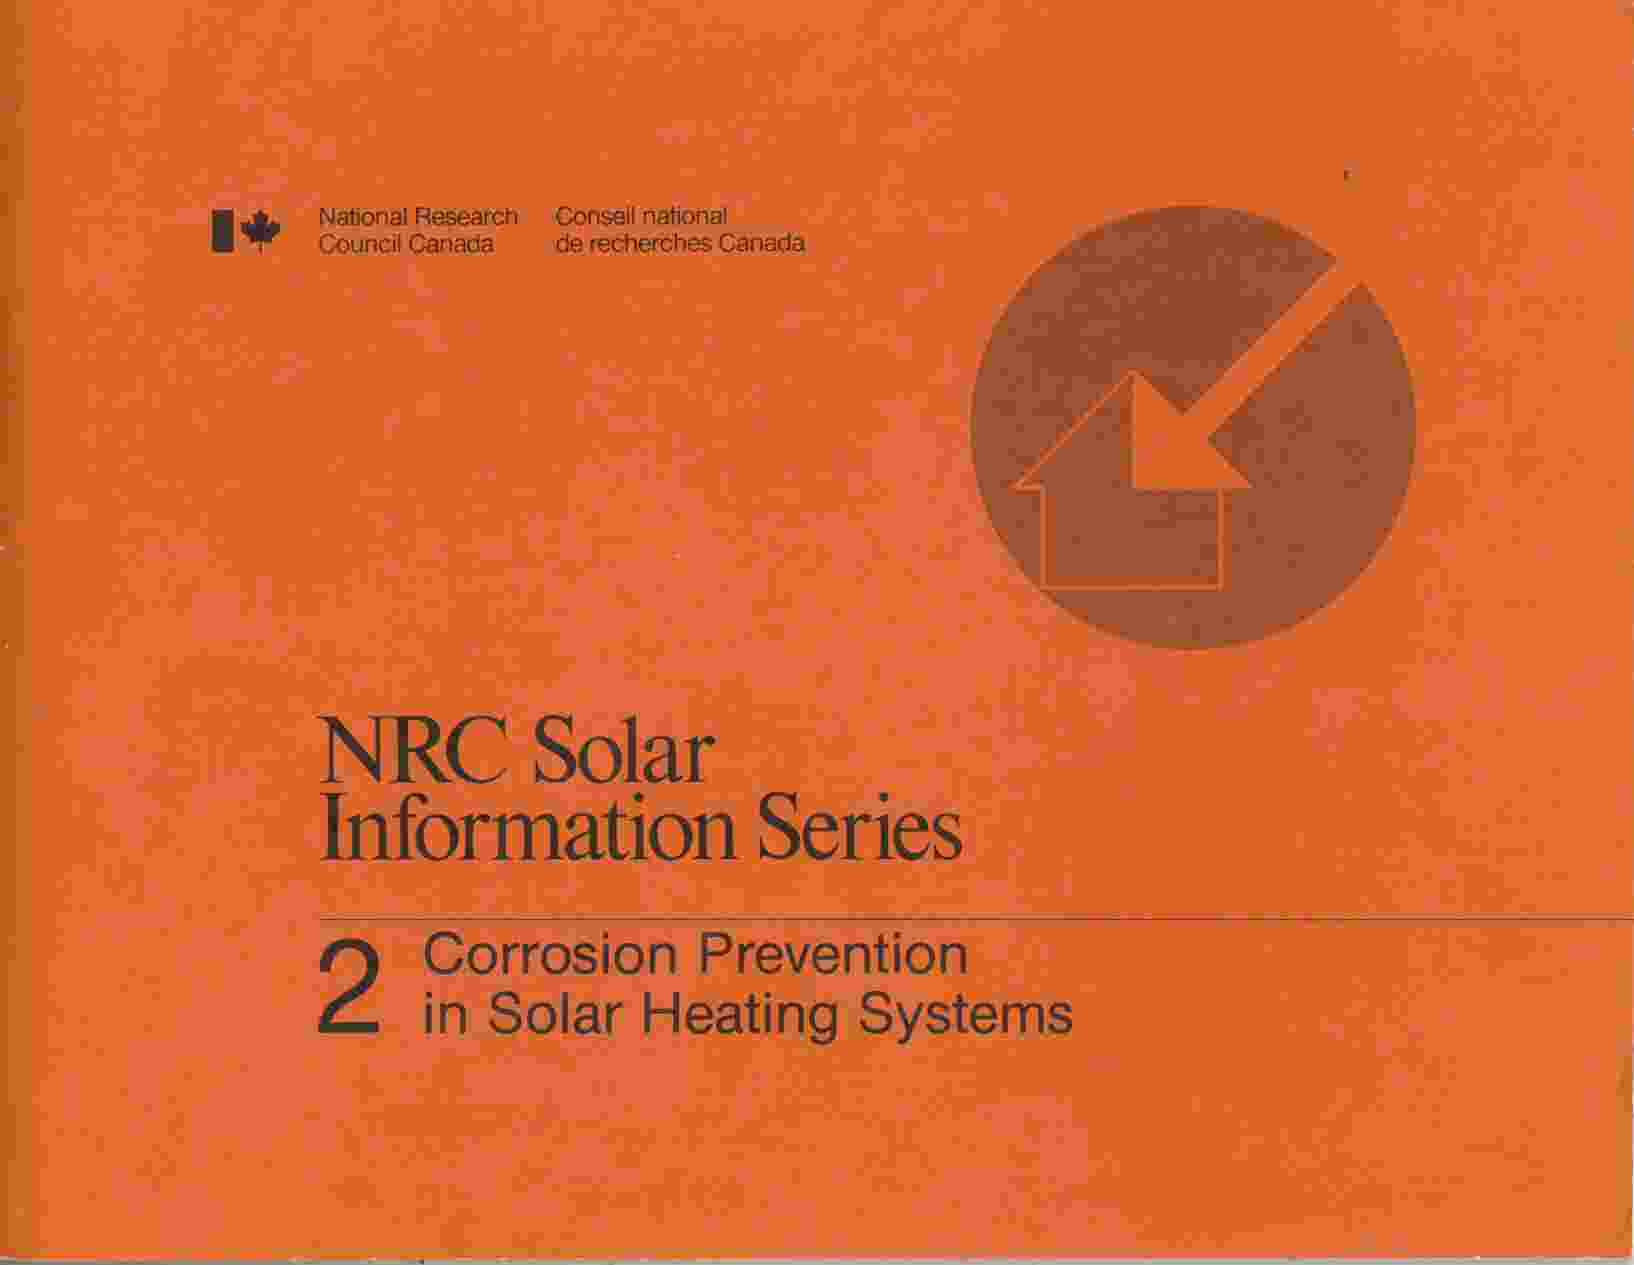 Image for Corrosion Prevention Solar Heating Systems (NRC Solar Information Series No. 2)